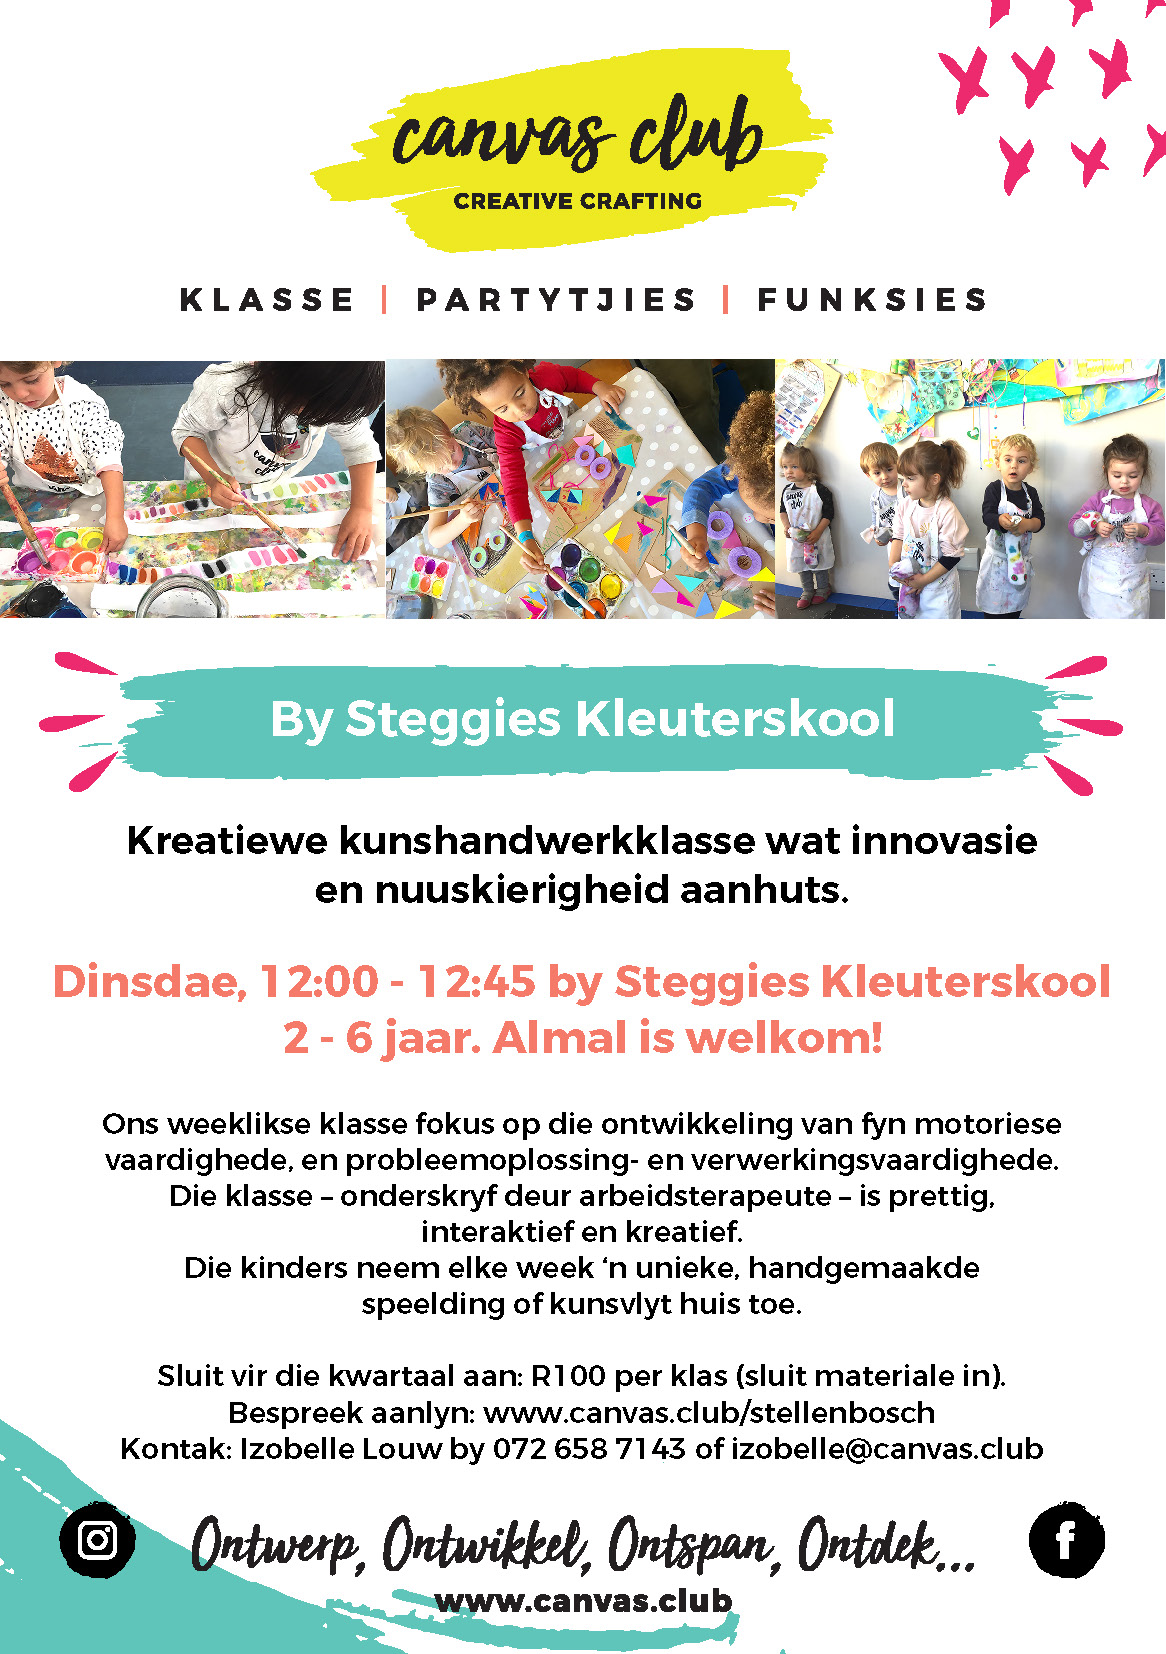 One or two classes at a school. Ages 2-6. Afrikaans